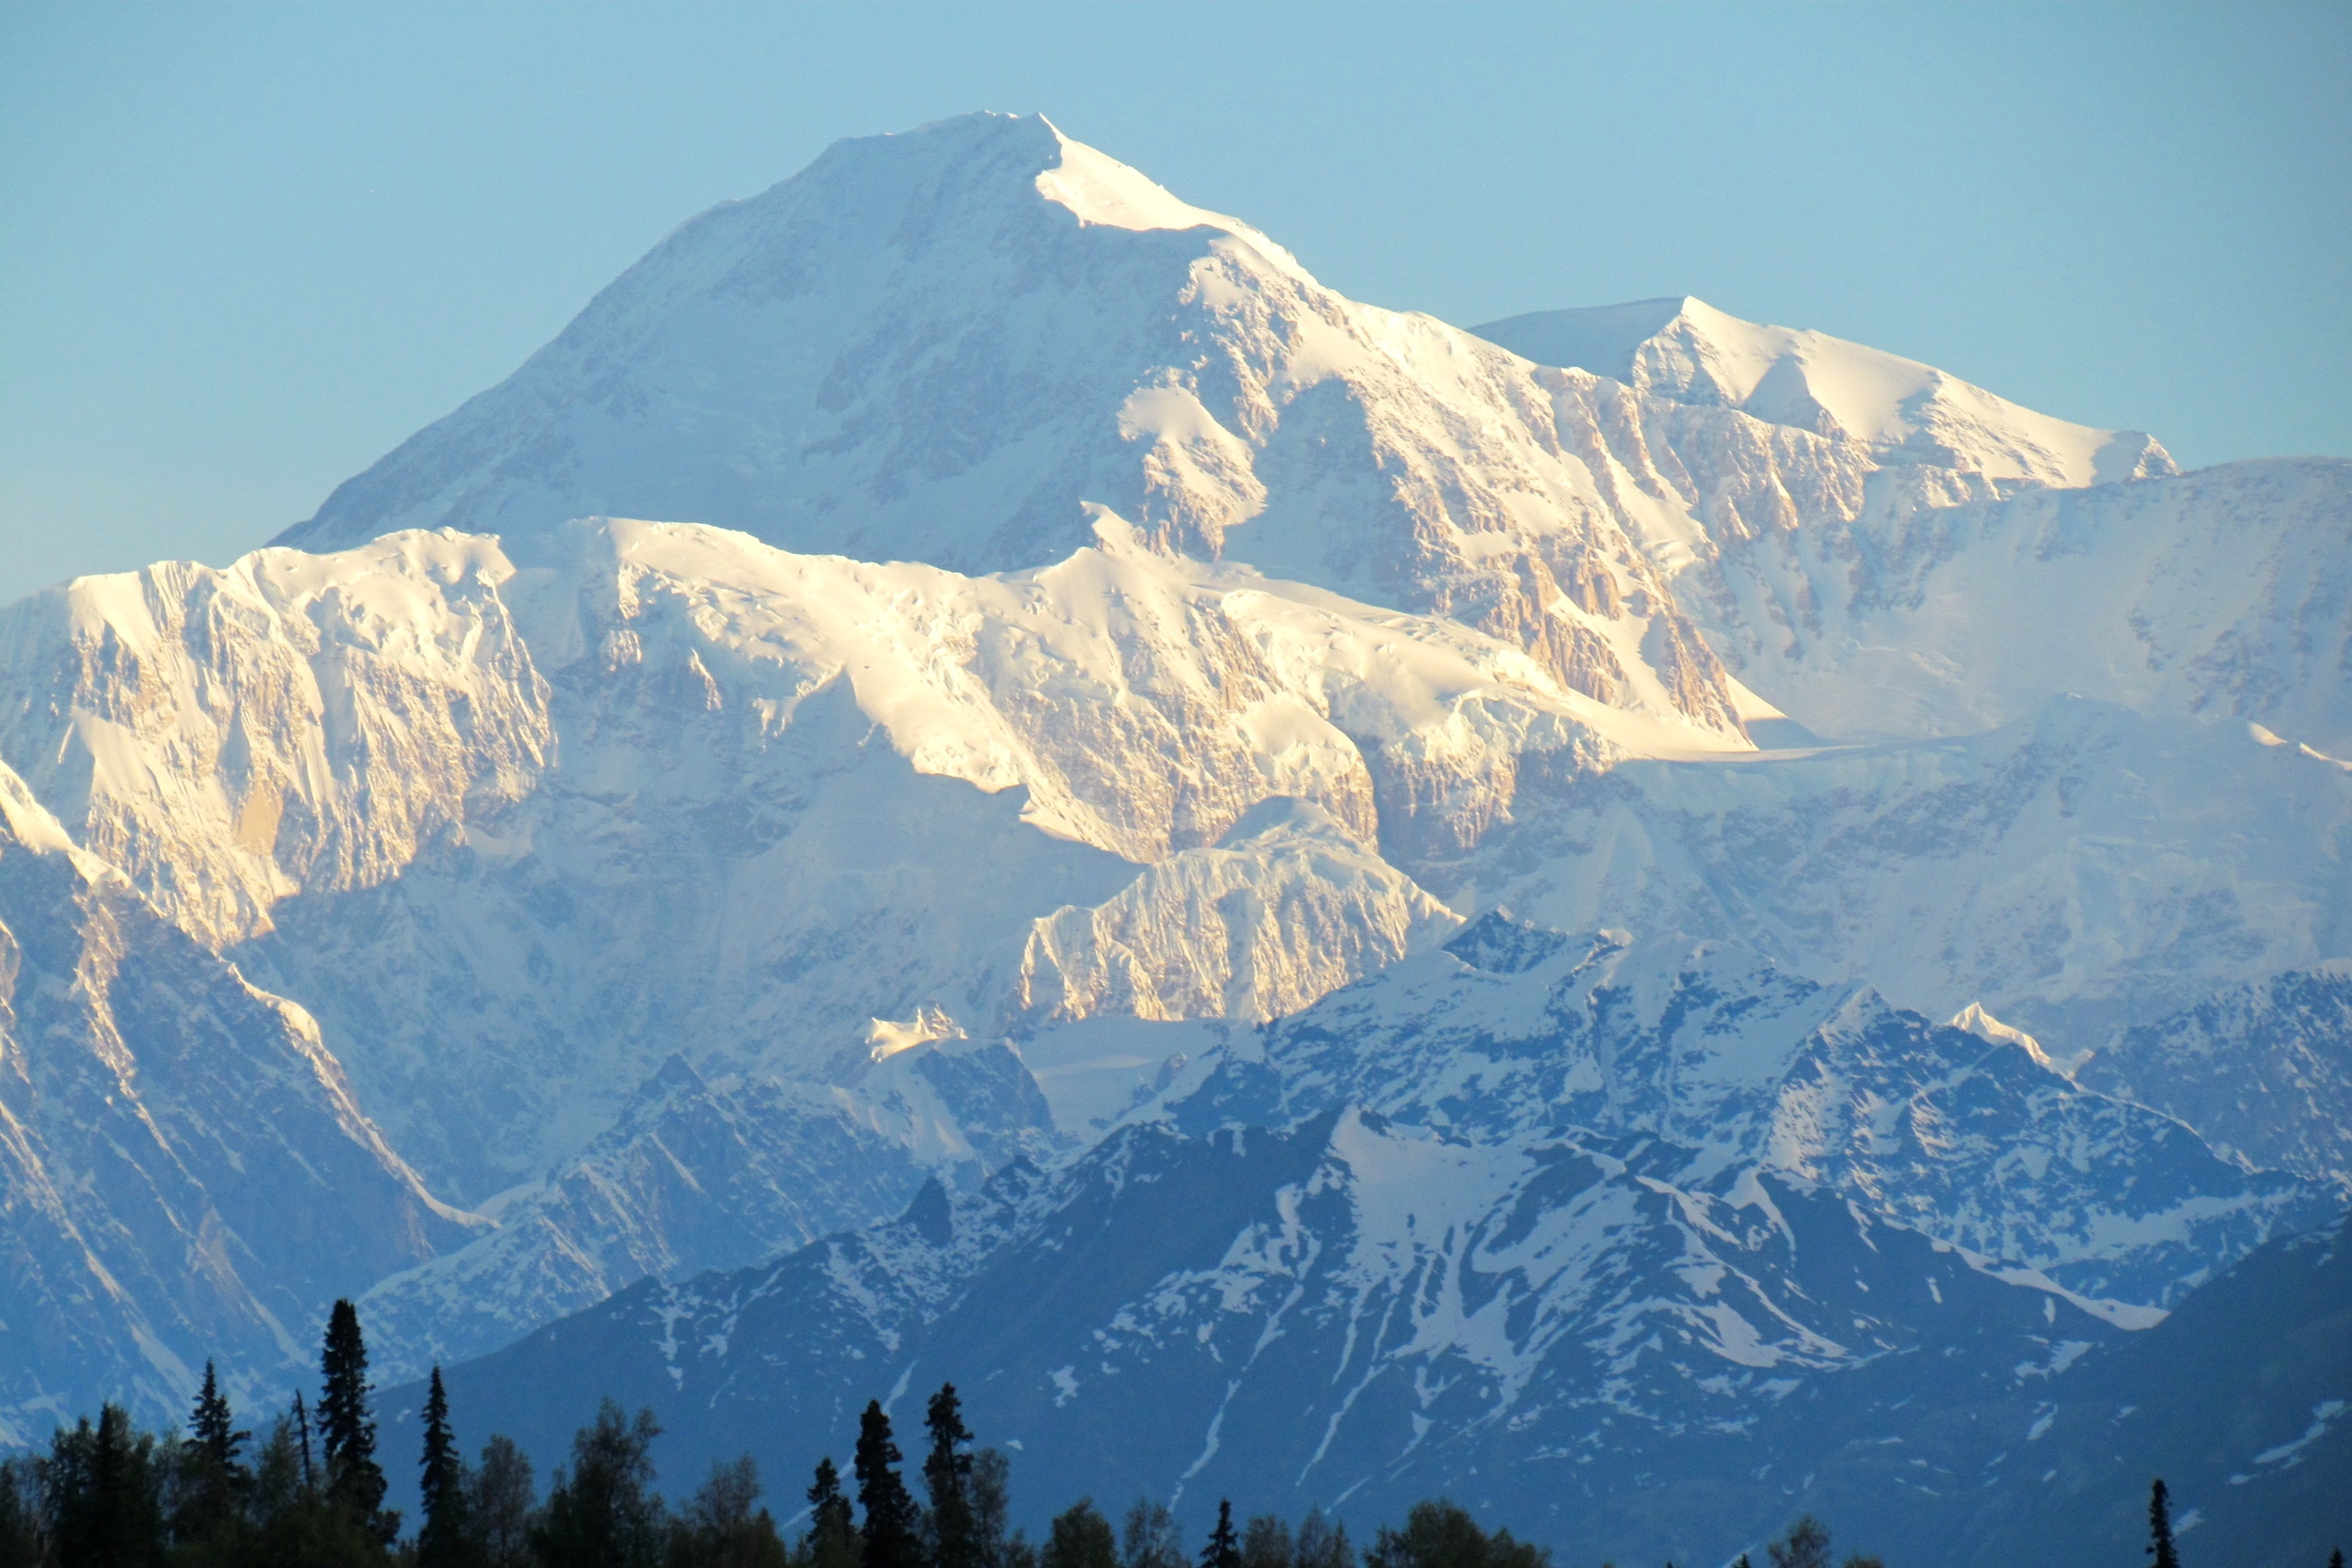 This image of Mt. McKinley at Denali National Park has nothing to do with Vincent Starrett or his book. It's just pretty.